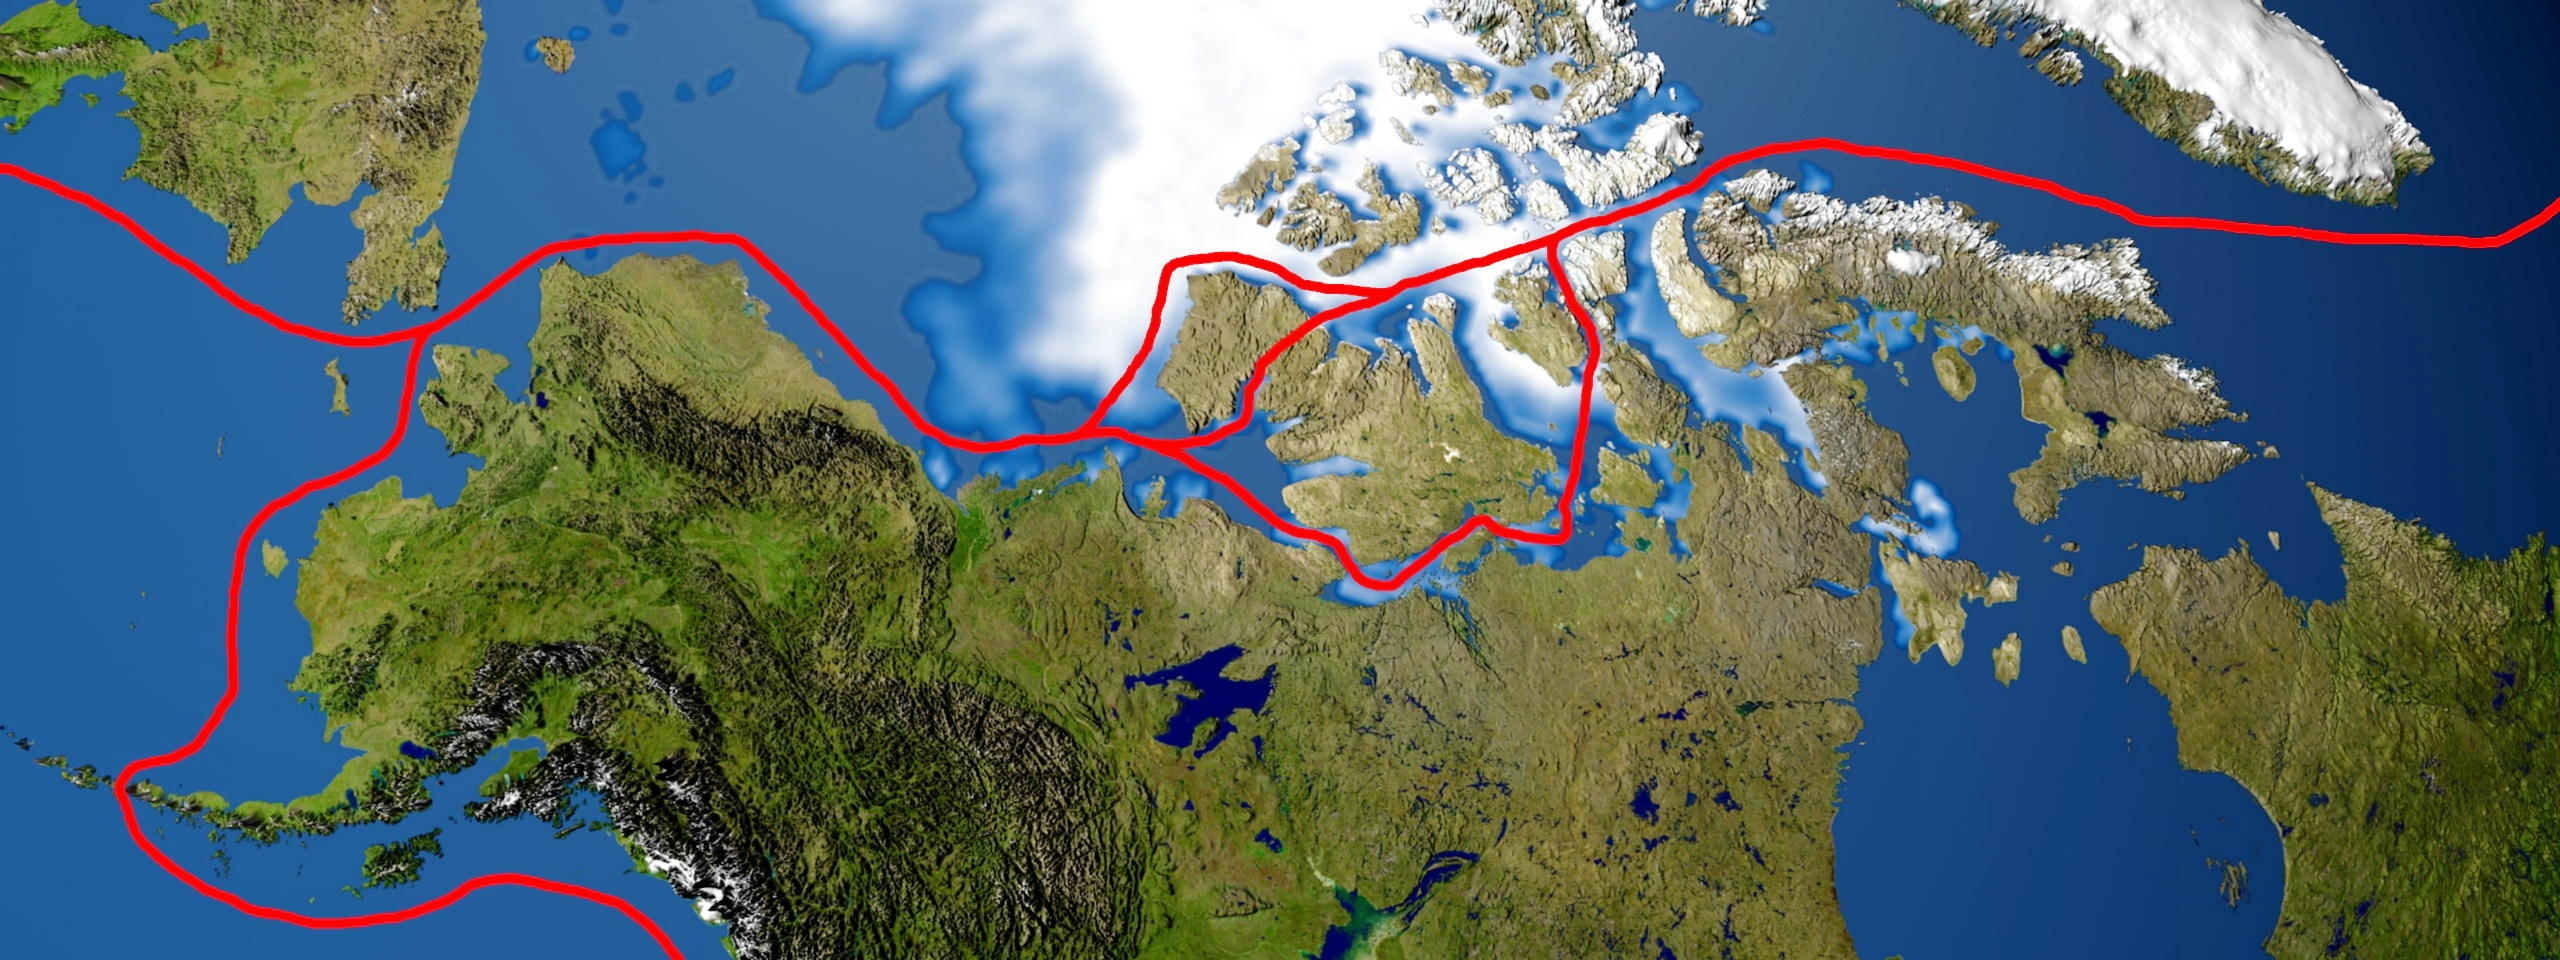 Illustration of the Northwest Passage in the Arctic Ocean